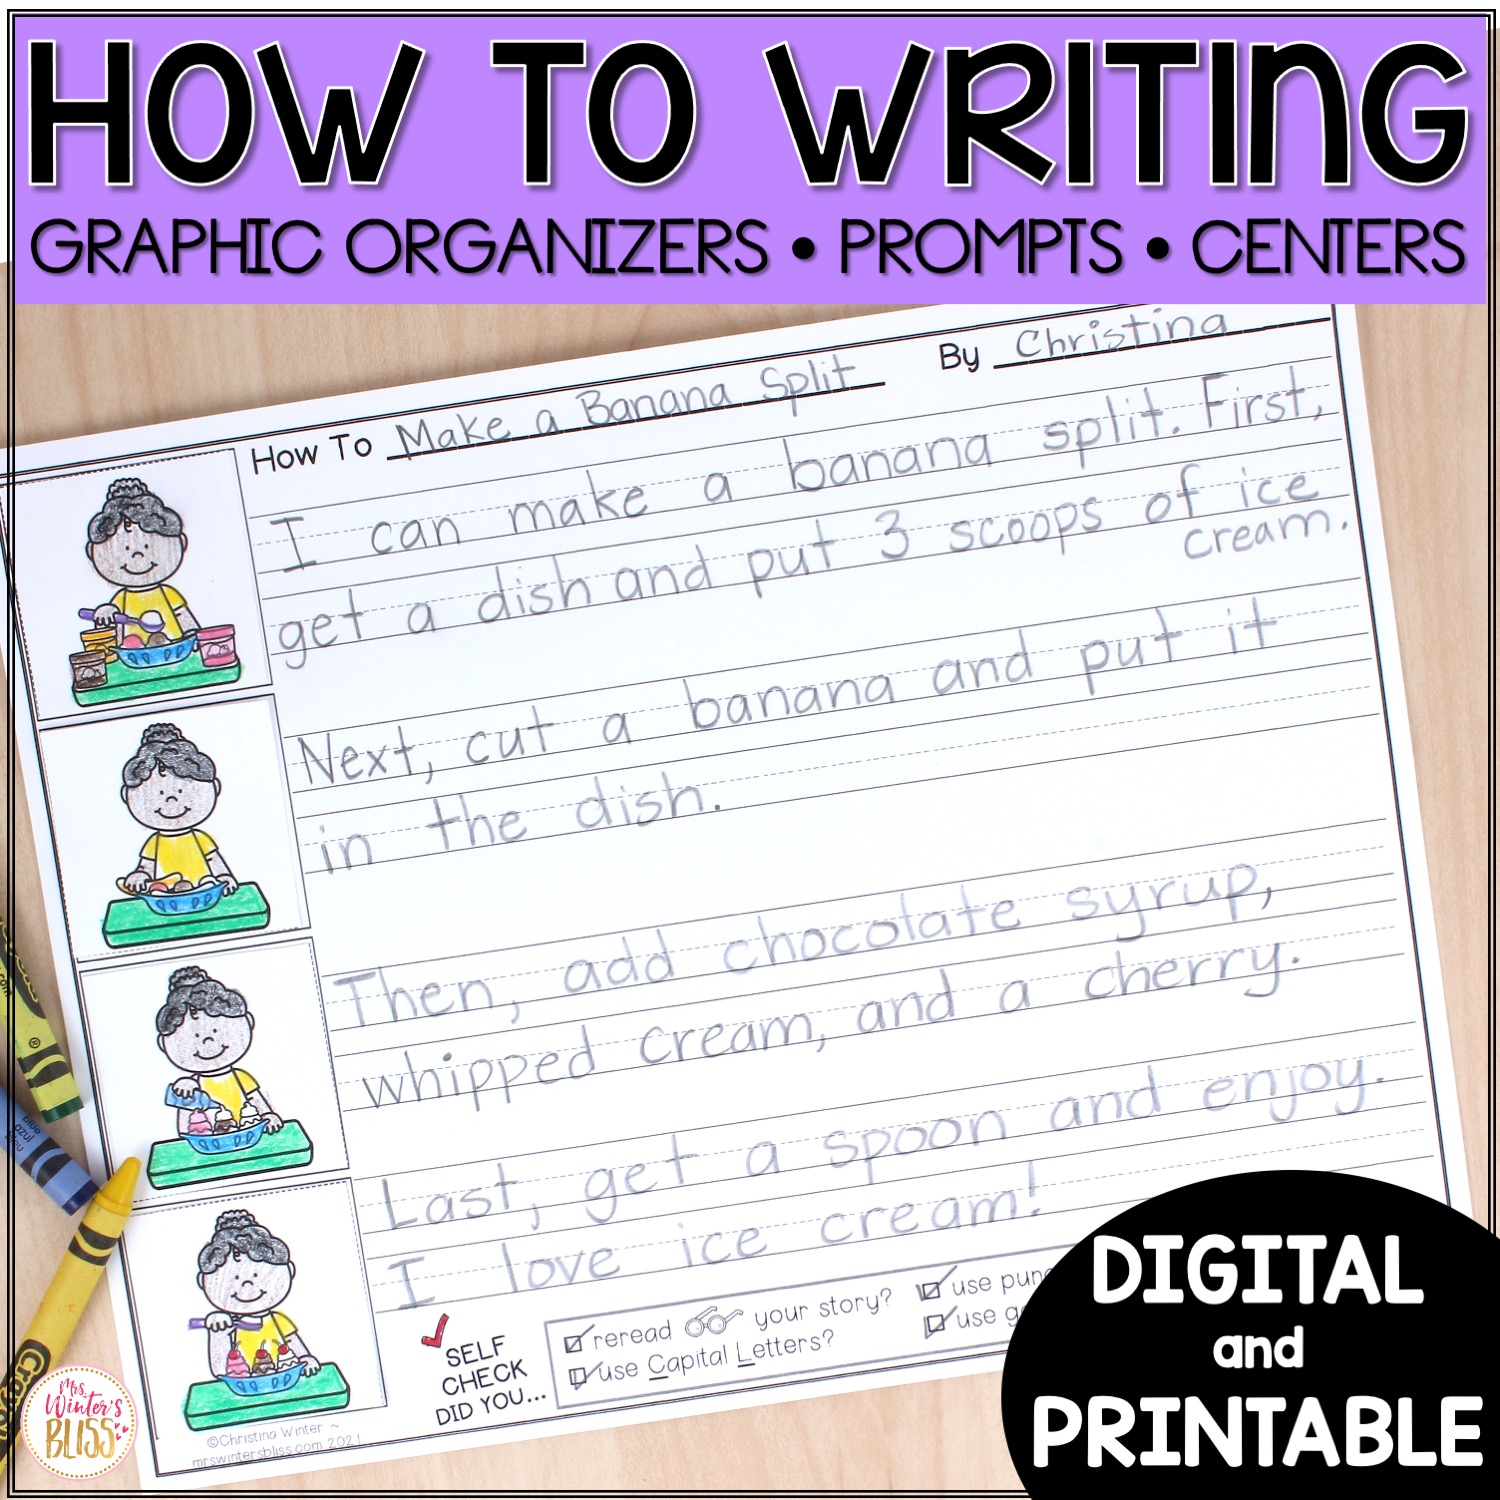 How To Writing Printable And Digital Procedural Writing Mrs Winter S Bliss